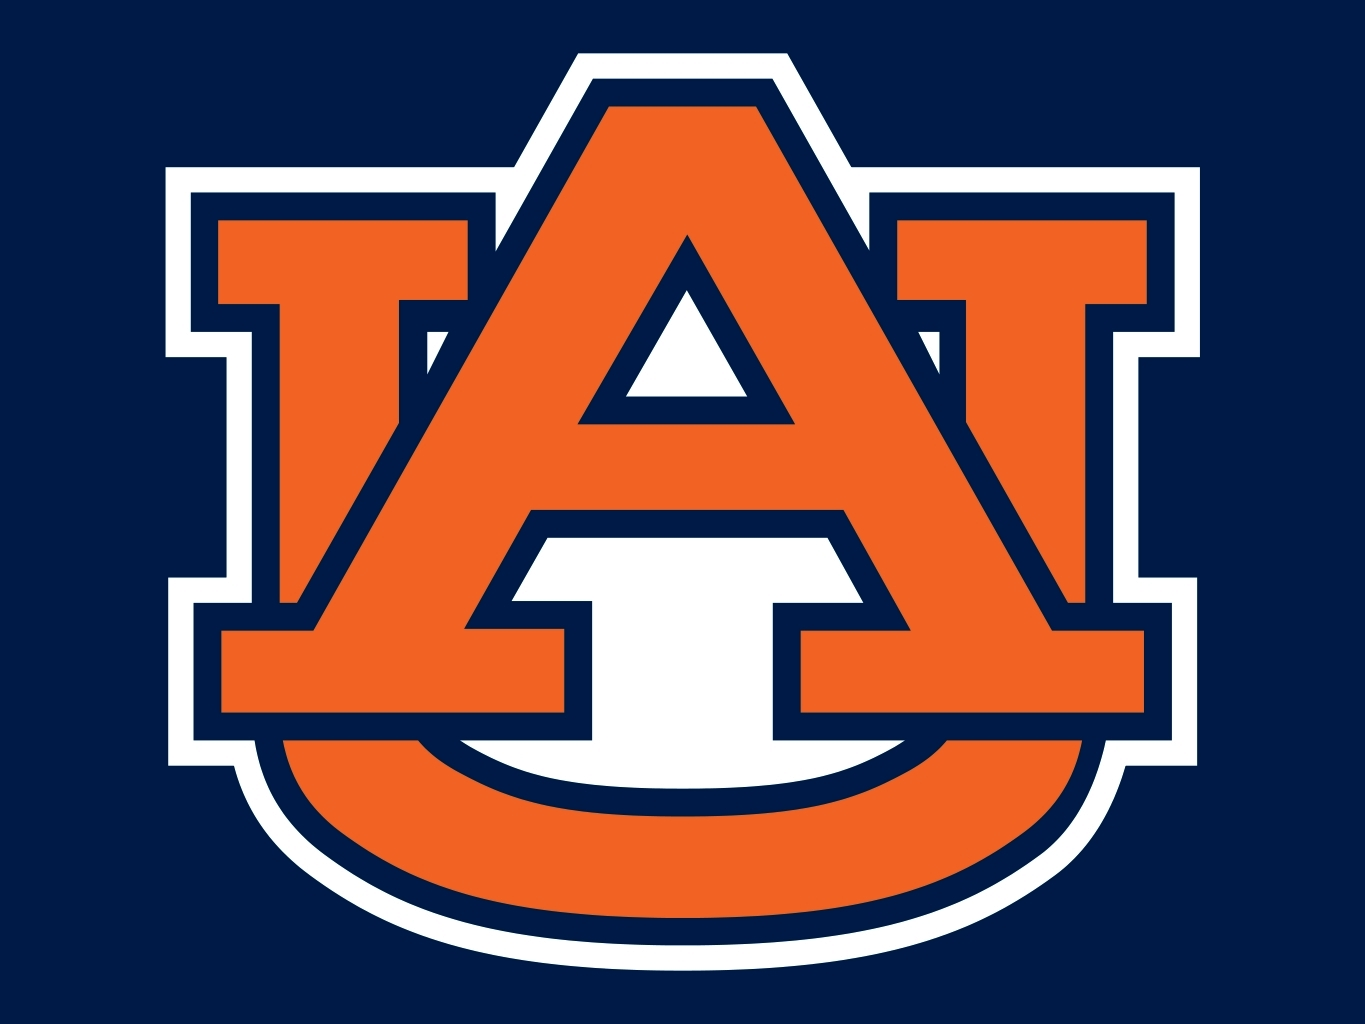 Auburn university clipart free graphic free stock Auburn Clip Art & Look At Clip Art Images - ClipartLook graphic free stock